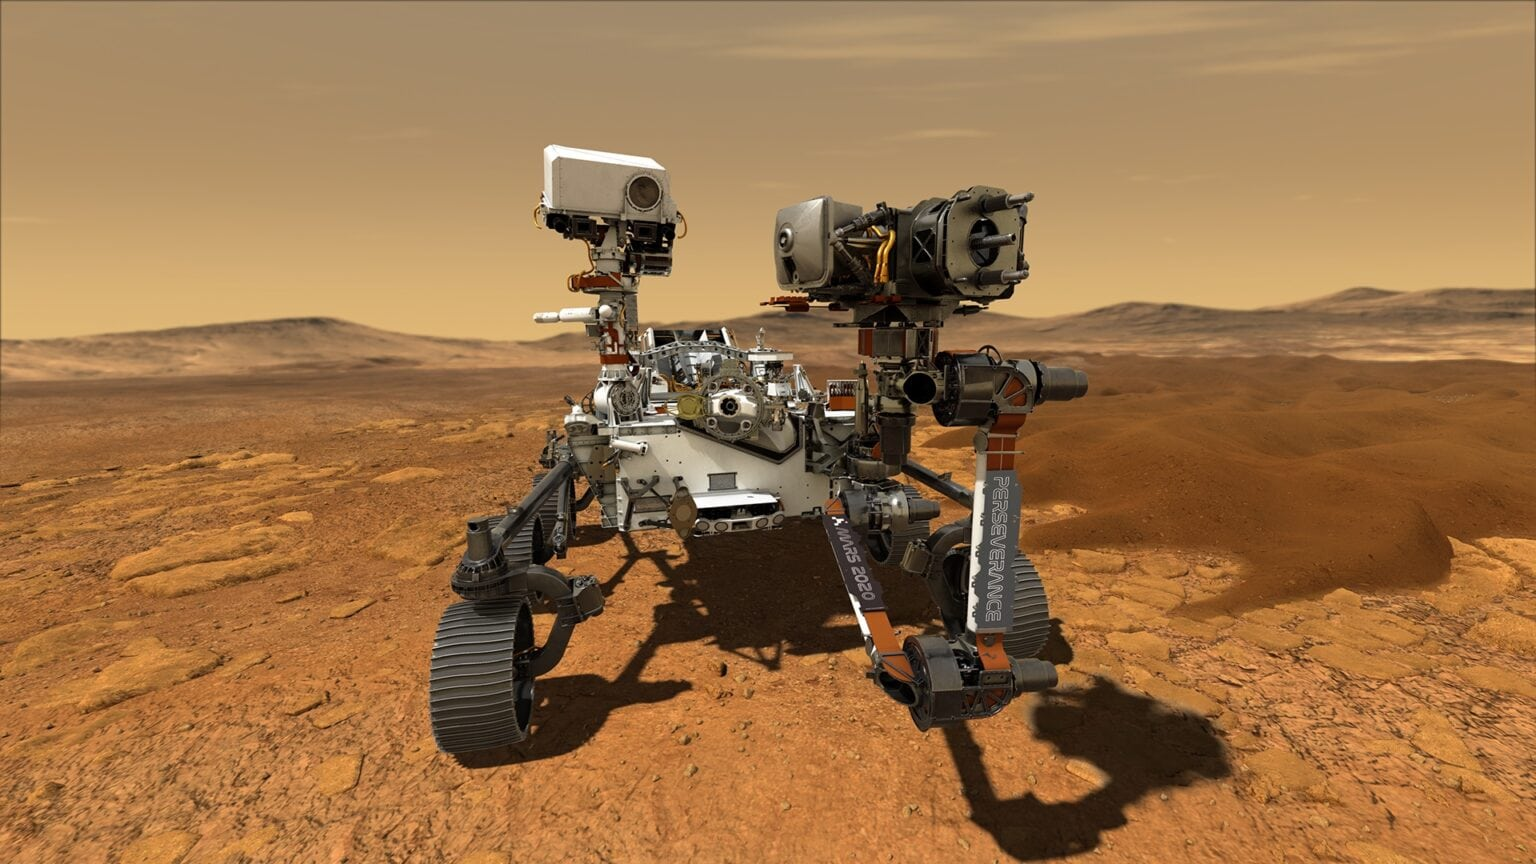 Perseverance rover tools around Mars with '90s iMac processor for its brain